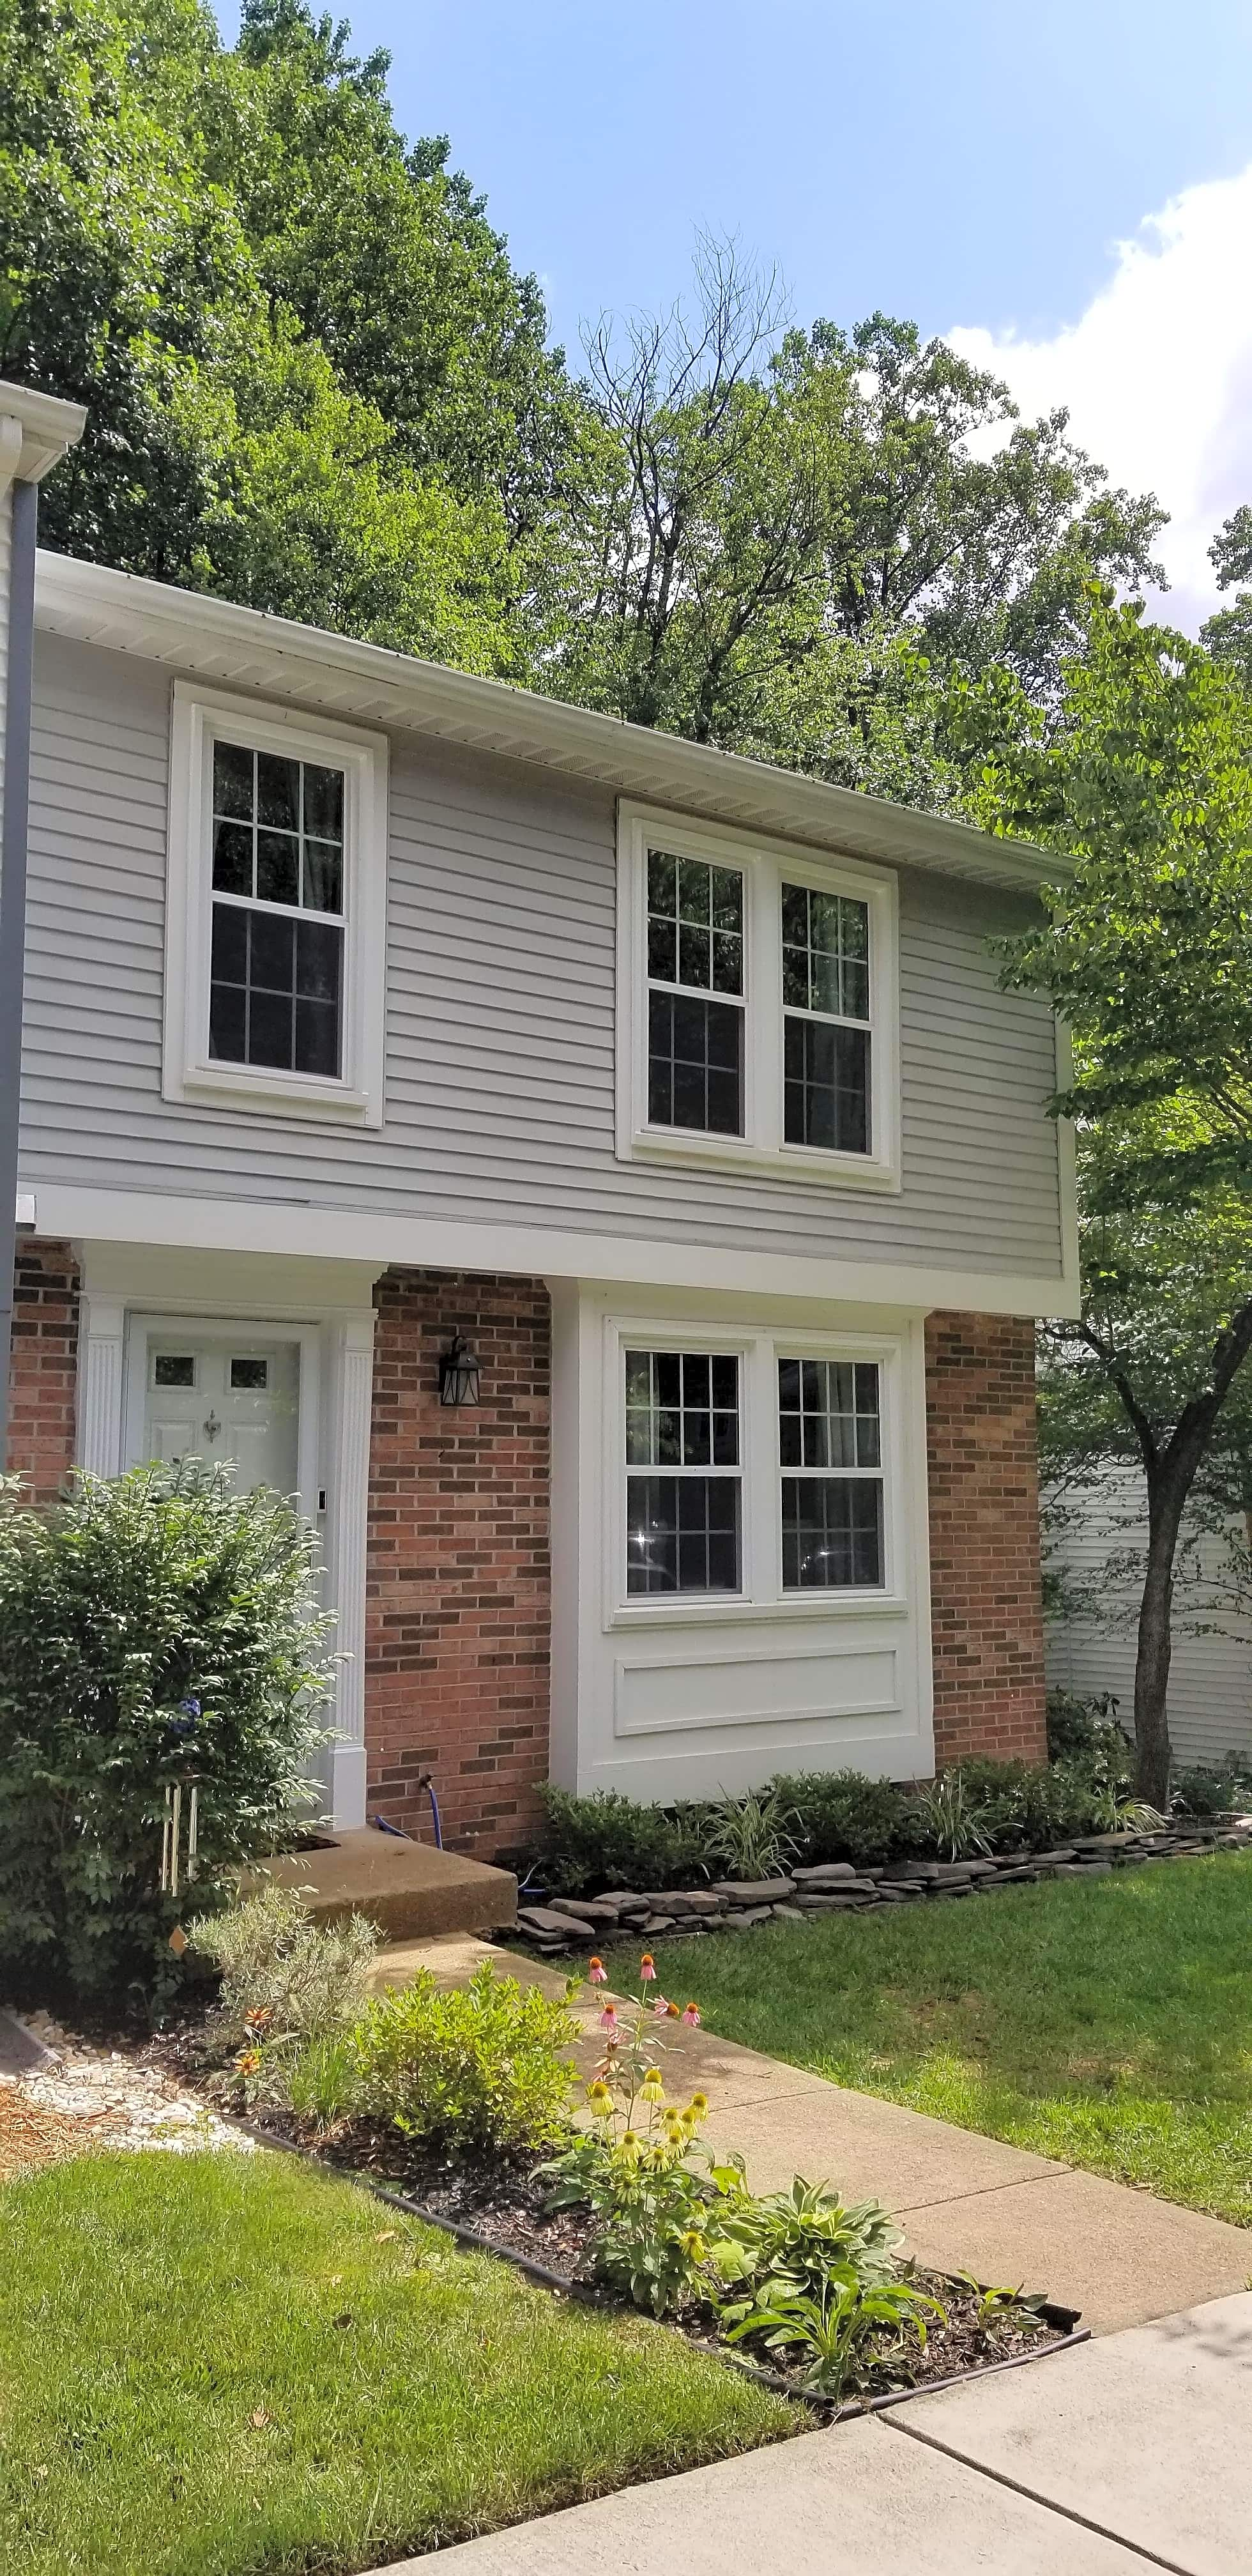 Condo for Rent in Reston